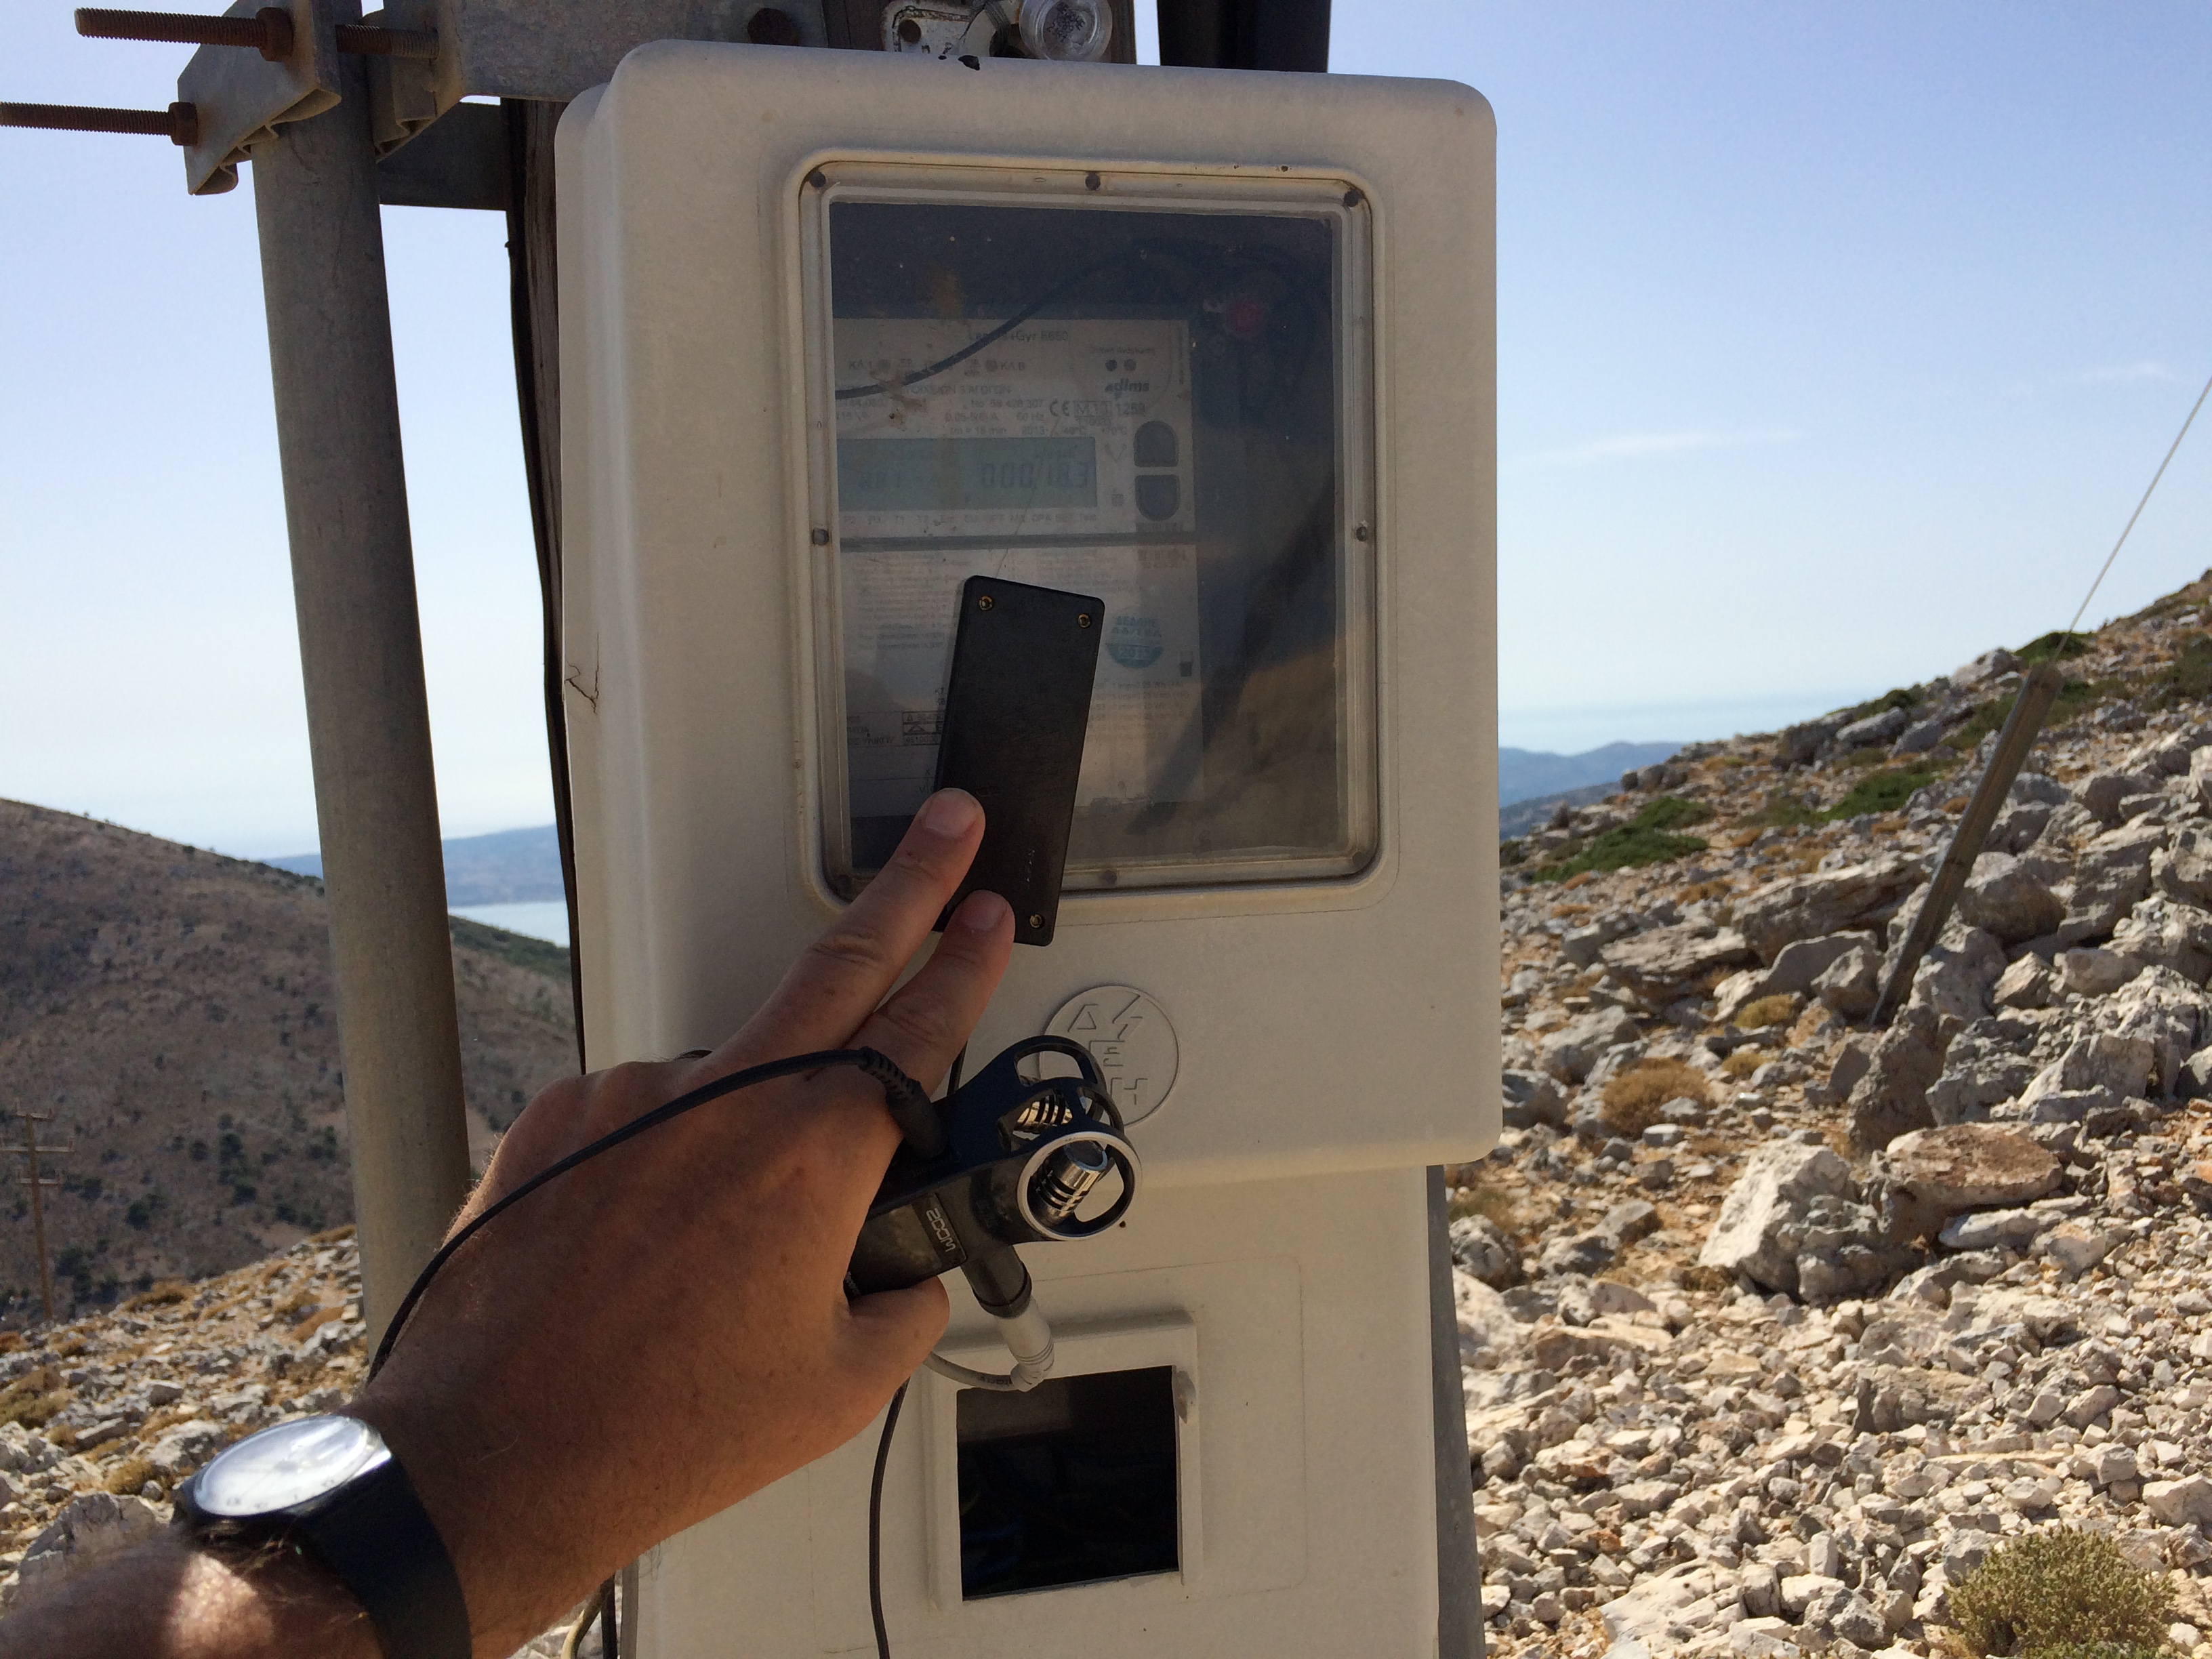 Turbine Electricity. Kefalonia Greece (2015). Siren Earthquake Radio